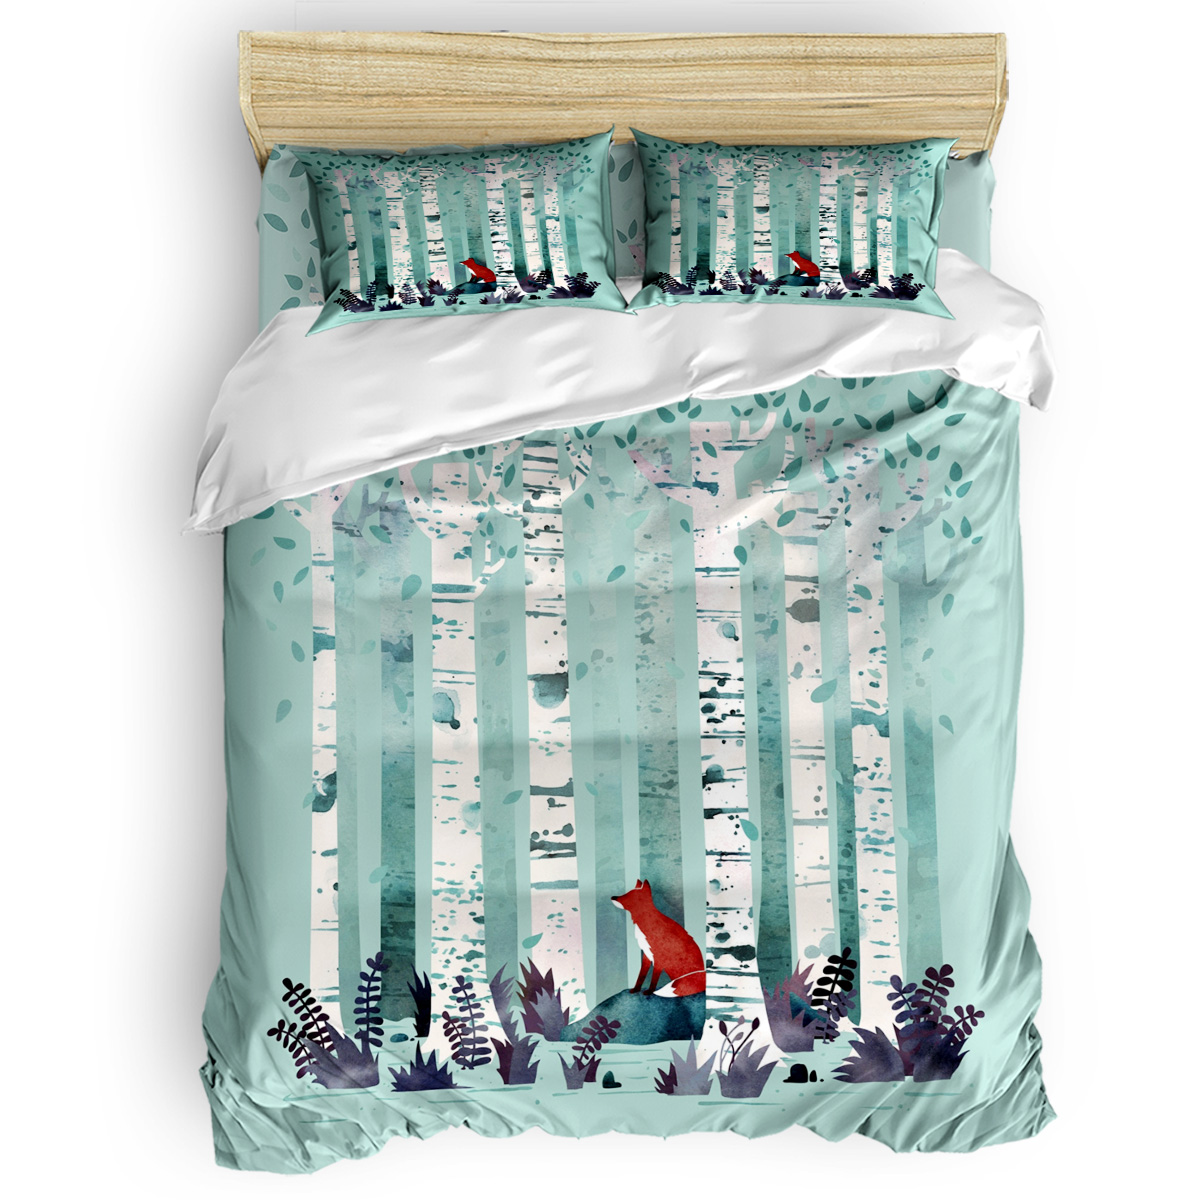 The Birches Duvet Cover 3D Cotton Duvet Cover King Size Queen Size Quilt Cover Set Bedclothes Comforter Single Bedding SetsThe Birches Duvet Cover 3D Cotton Duvet Cover King Size Queen Size Quilt Cover Set Bedclothes Comforter Single Bedding Sets